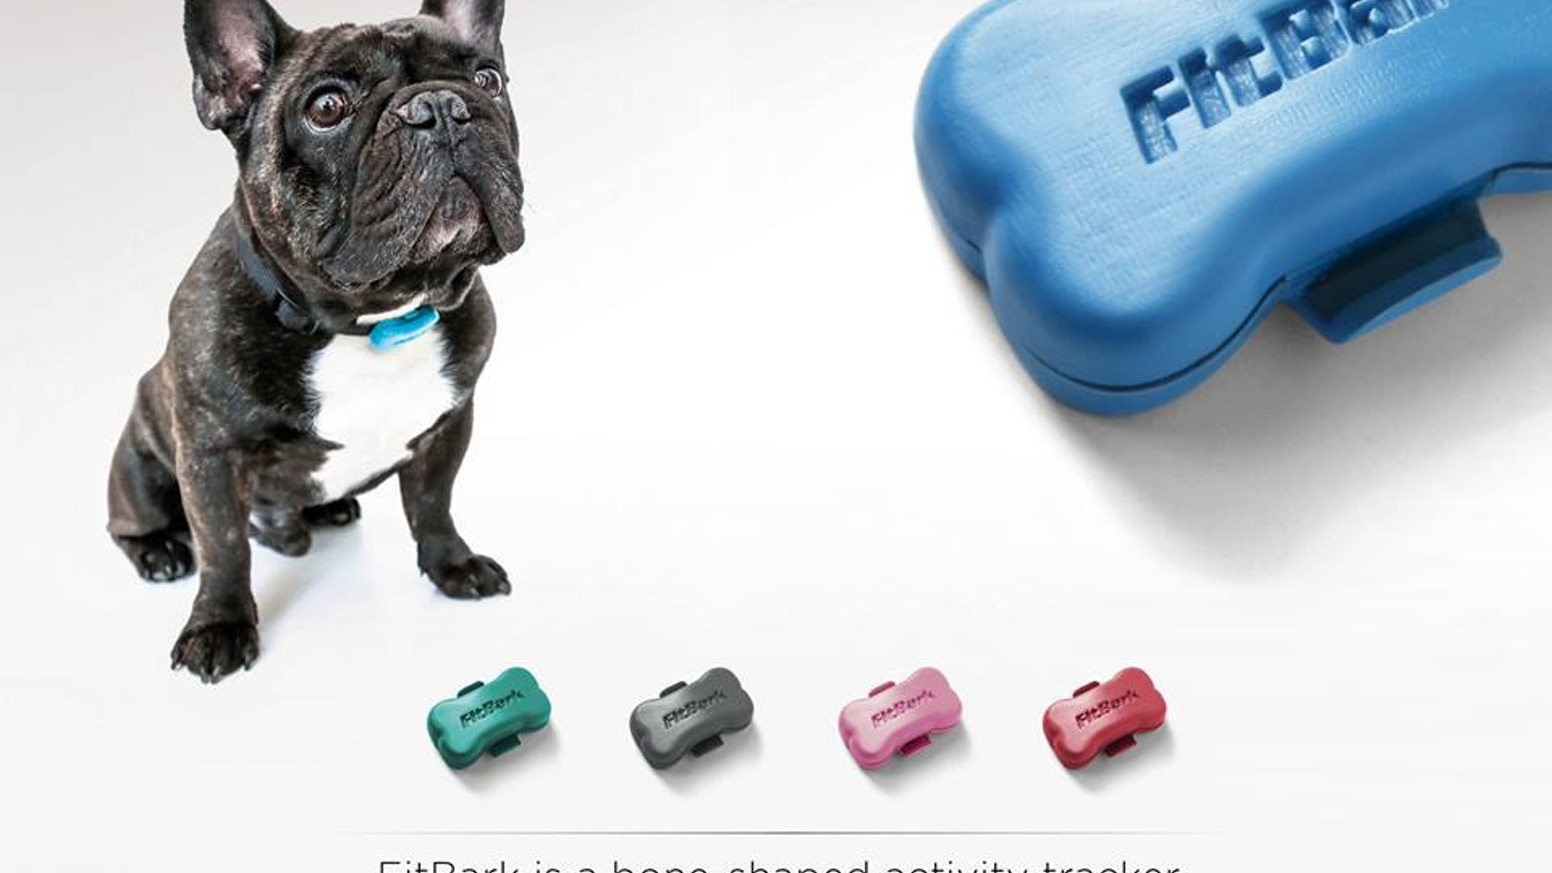 FitBark monitors your dog's everyday activity and turns it into BarkPoints so you can track progress. It's a new way to understand your dog's health, explain changes in behavior, and make better decisions with your vet.